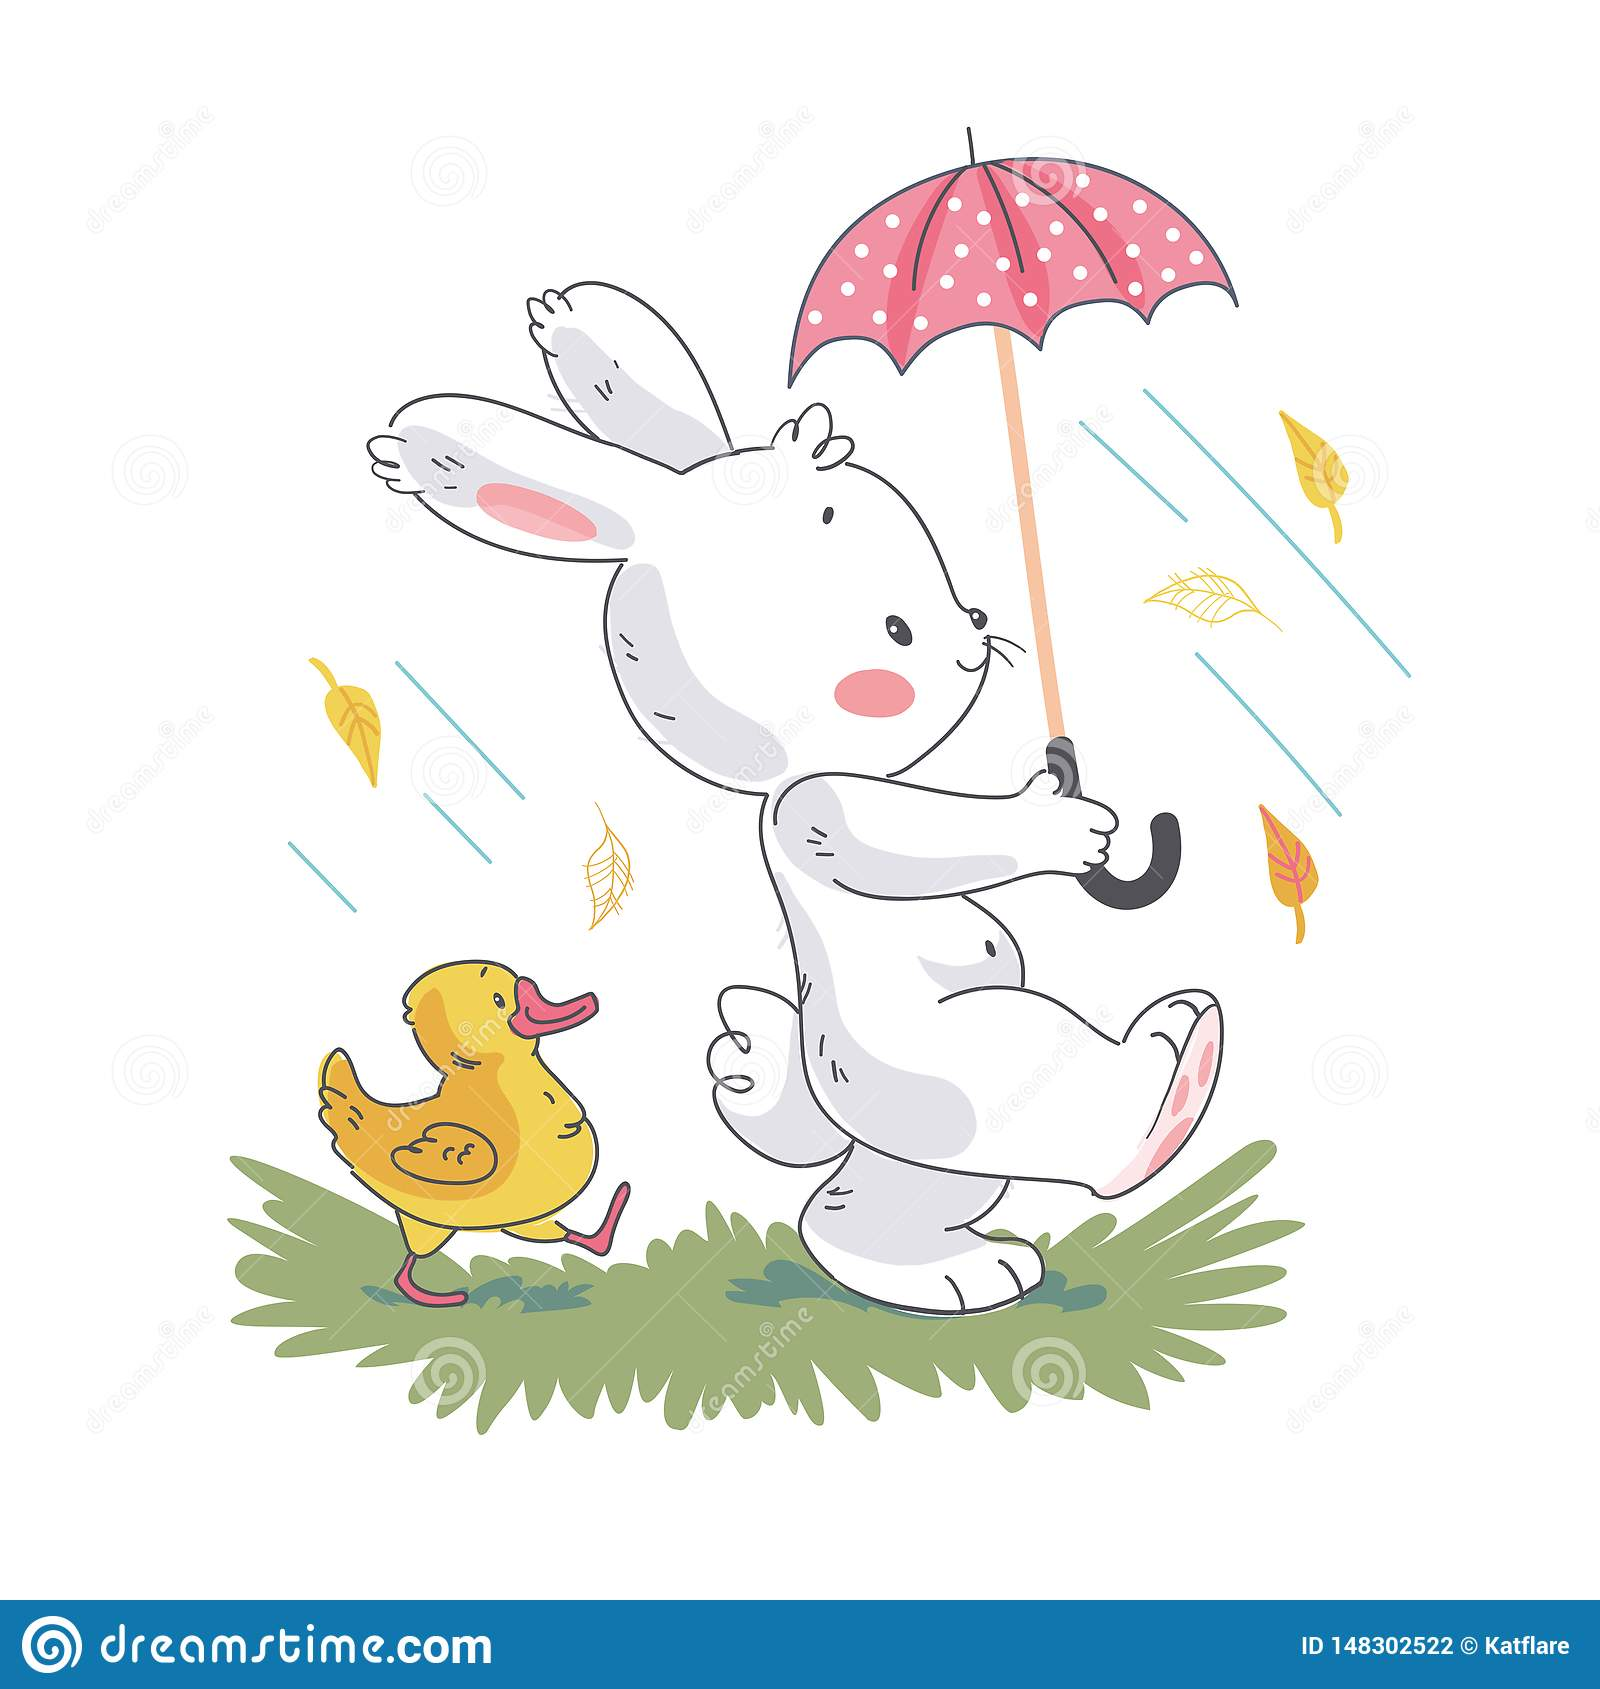 Vector flat illustration of cute white baby bunny character and little duck walking under umbrella. Hand drawn style.